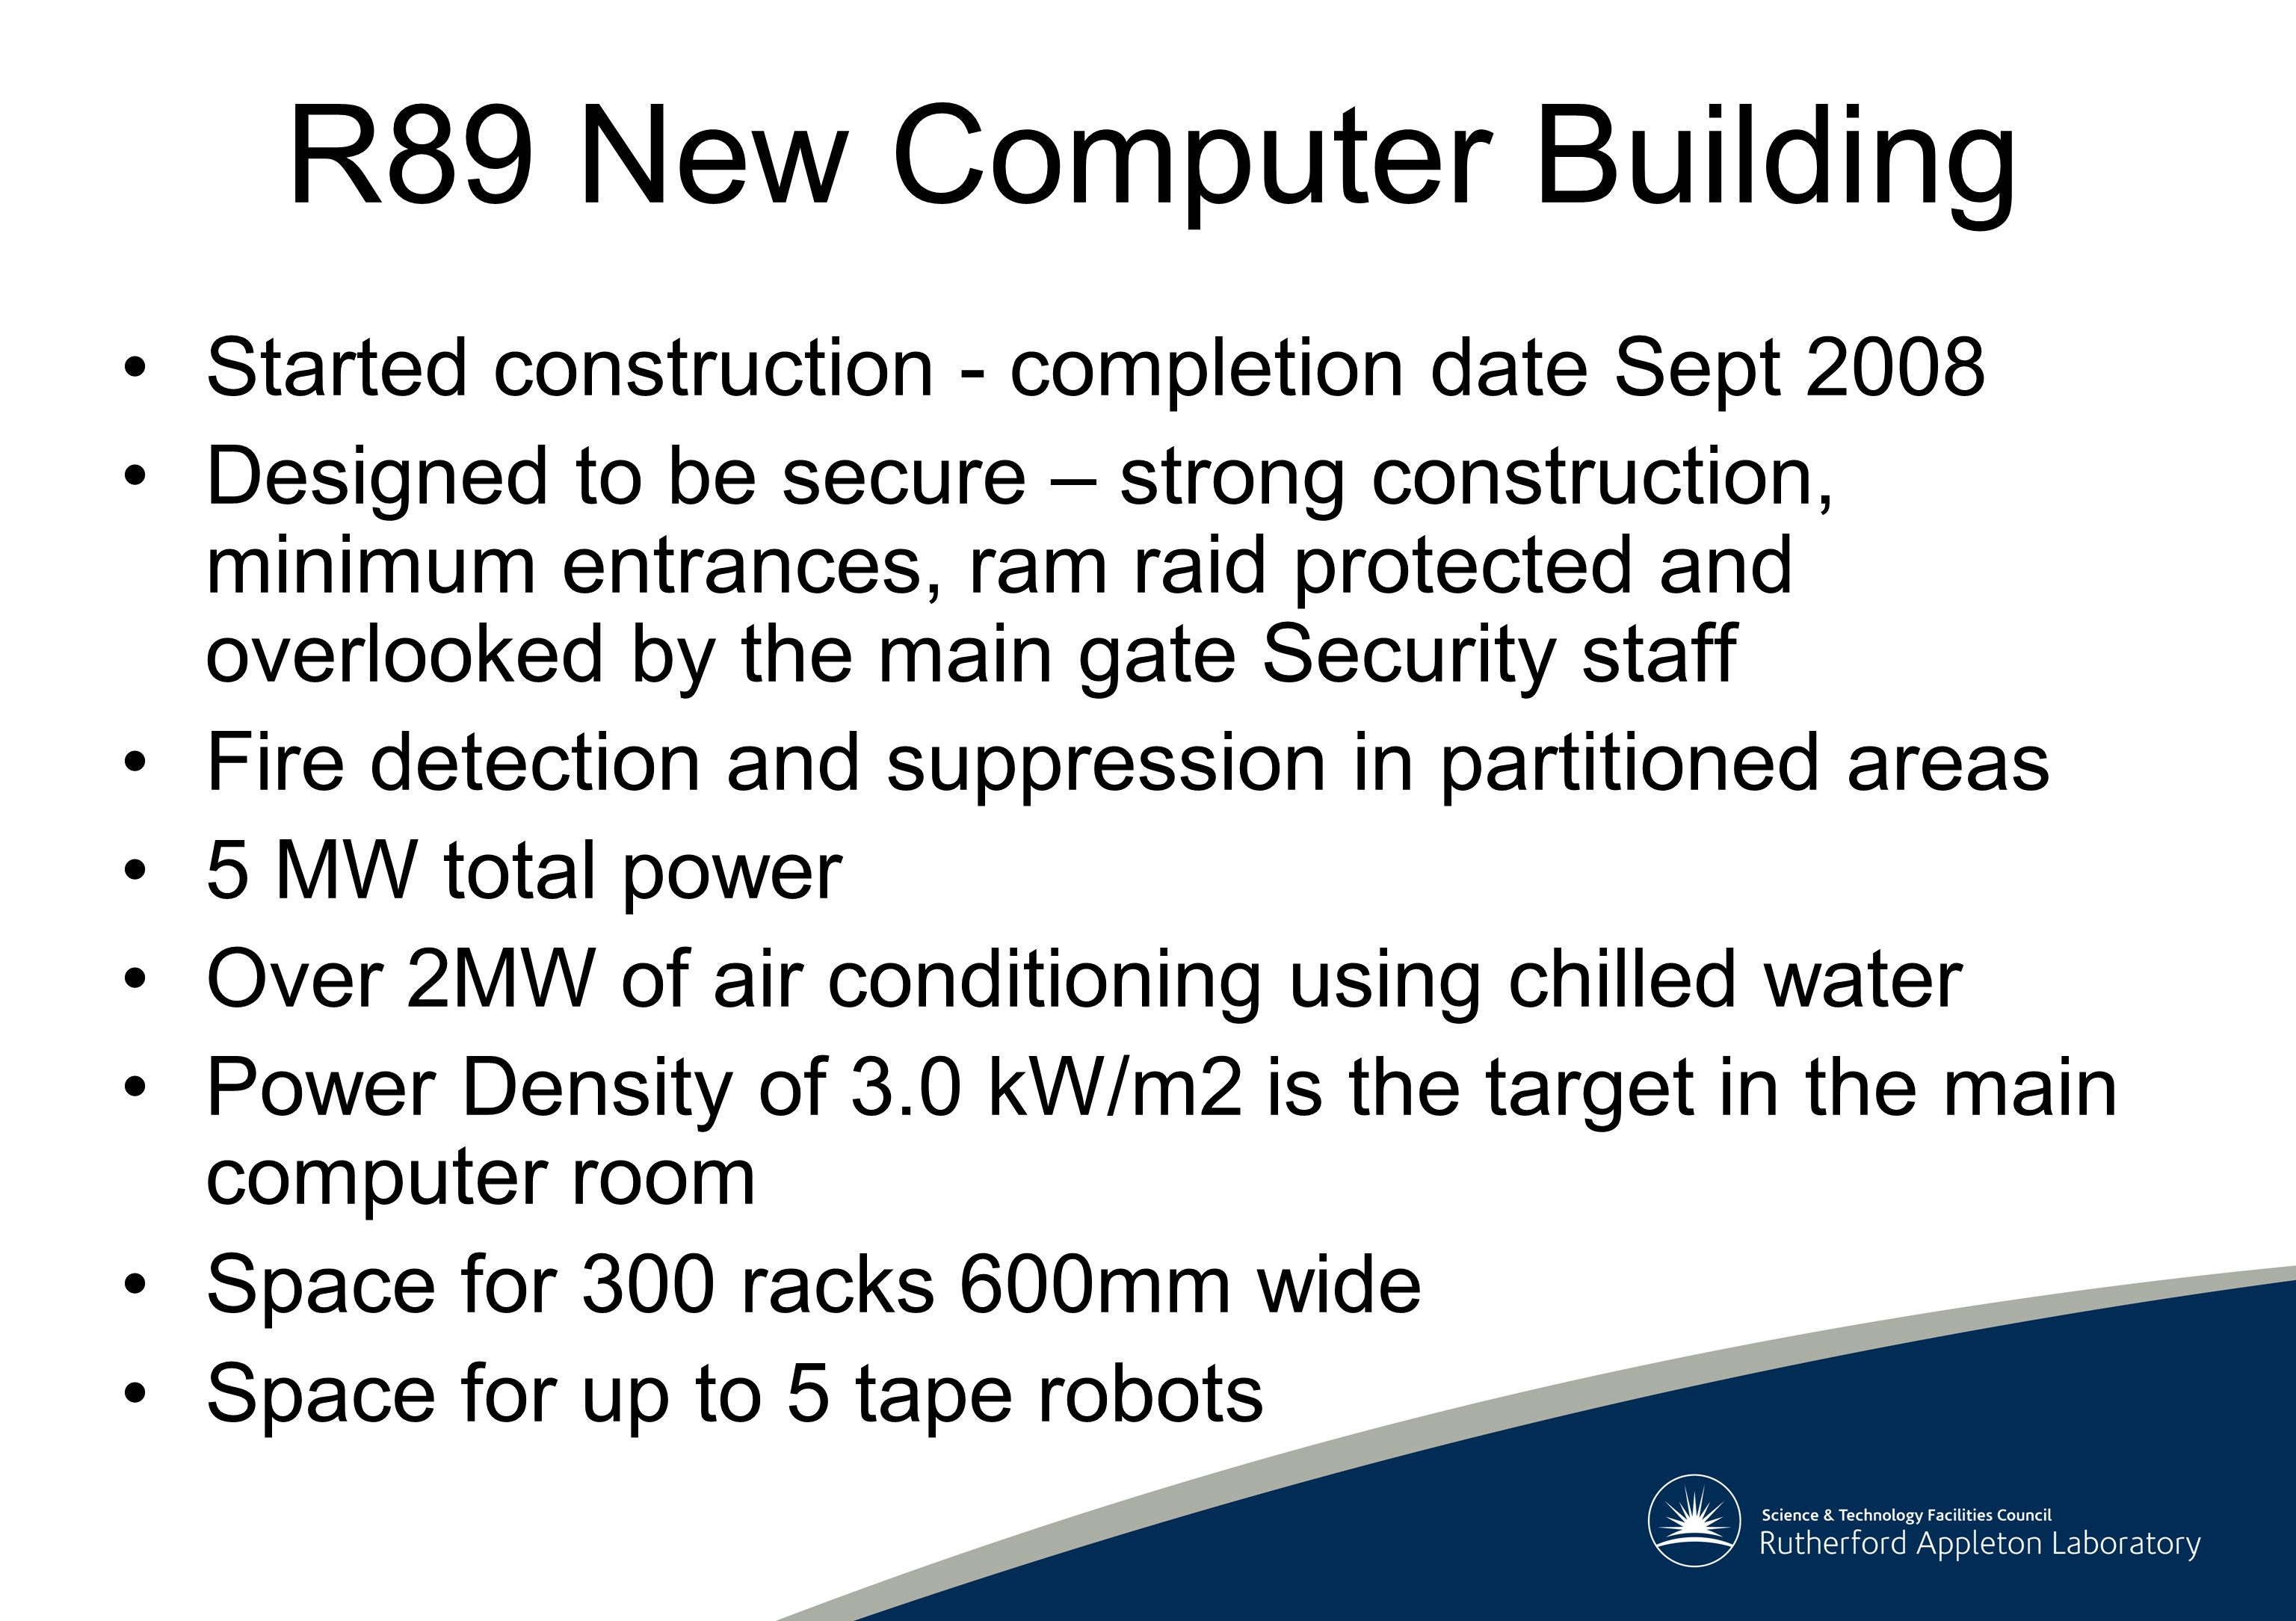 R89 New Computer Building Two floors of offices for computer support staff Combined Heat & Power unit reduces carbon footprint Computer room capacity should be OK up to 2012 unless we get more systems to house Chilled water ring main to support local water cooling of racks will allow us to go to more than the 15kW per rack we currently limit ourselves to Designed to be expandable so could add more chilled water capacity (most likely first shortfall) and double the space capacity Atlas is the backstop !